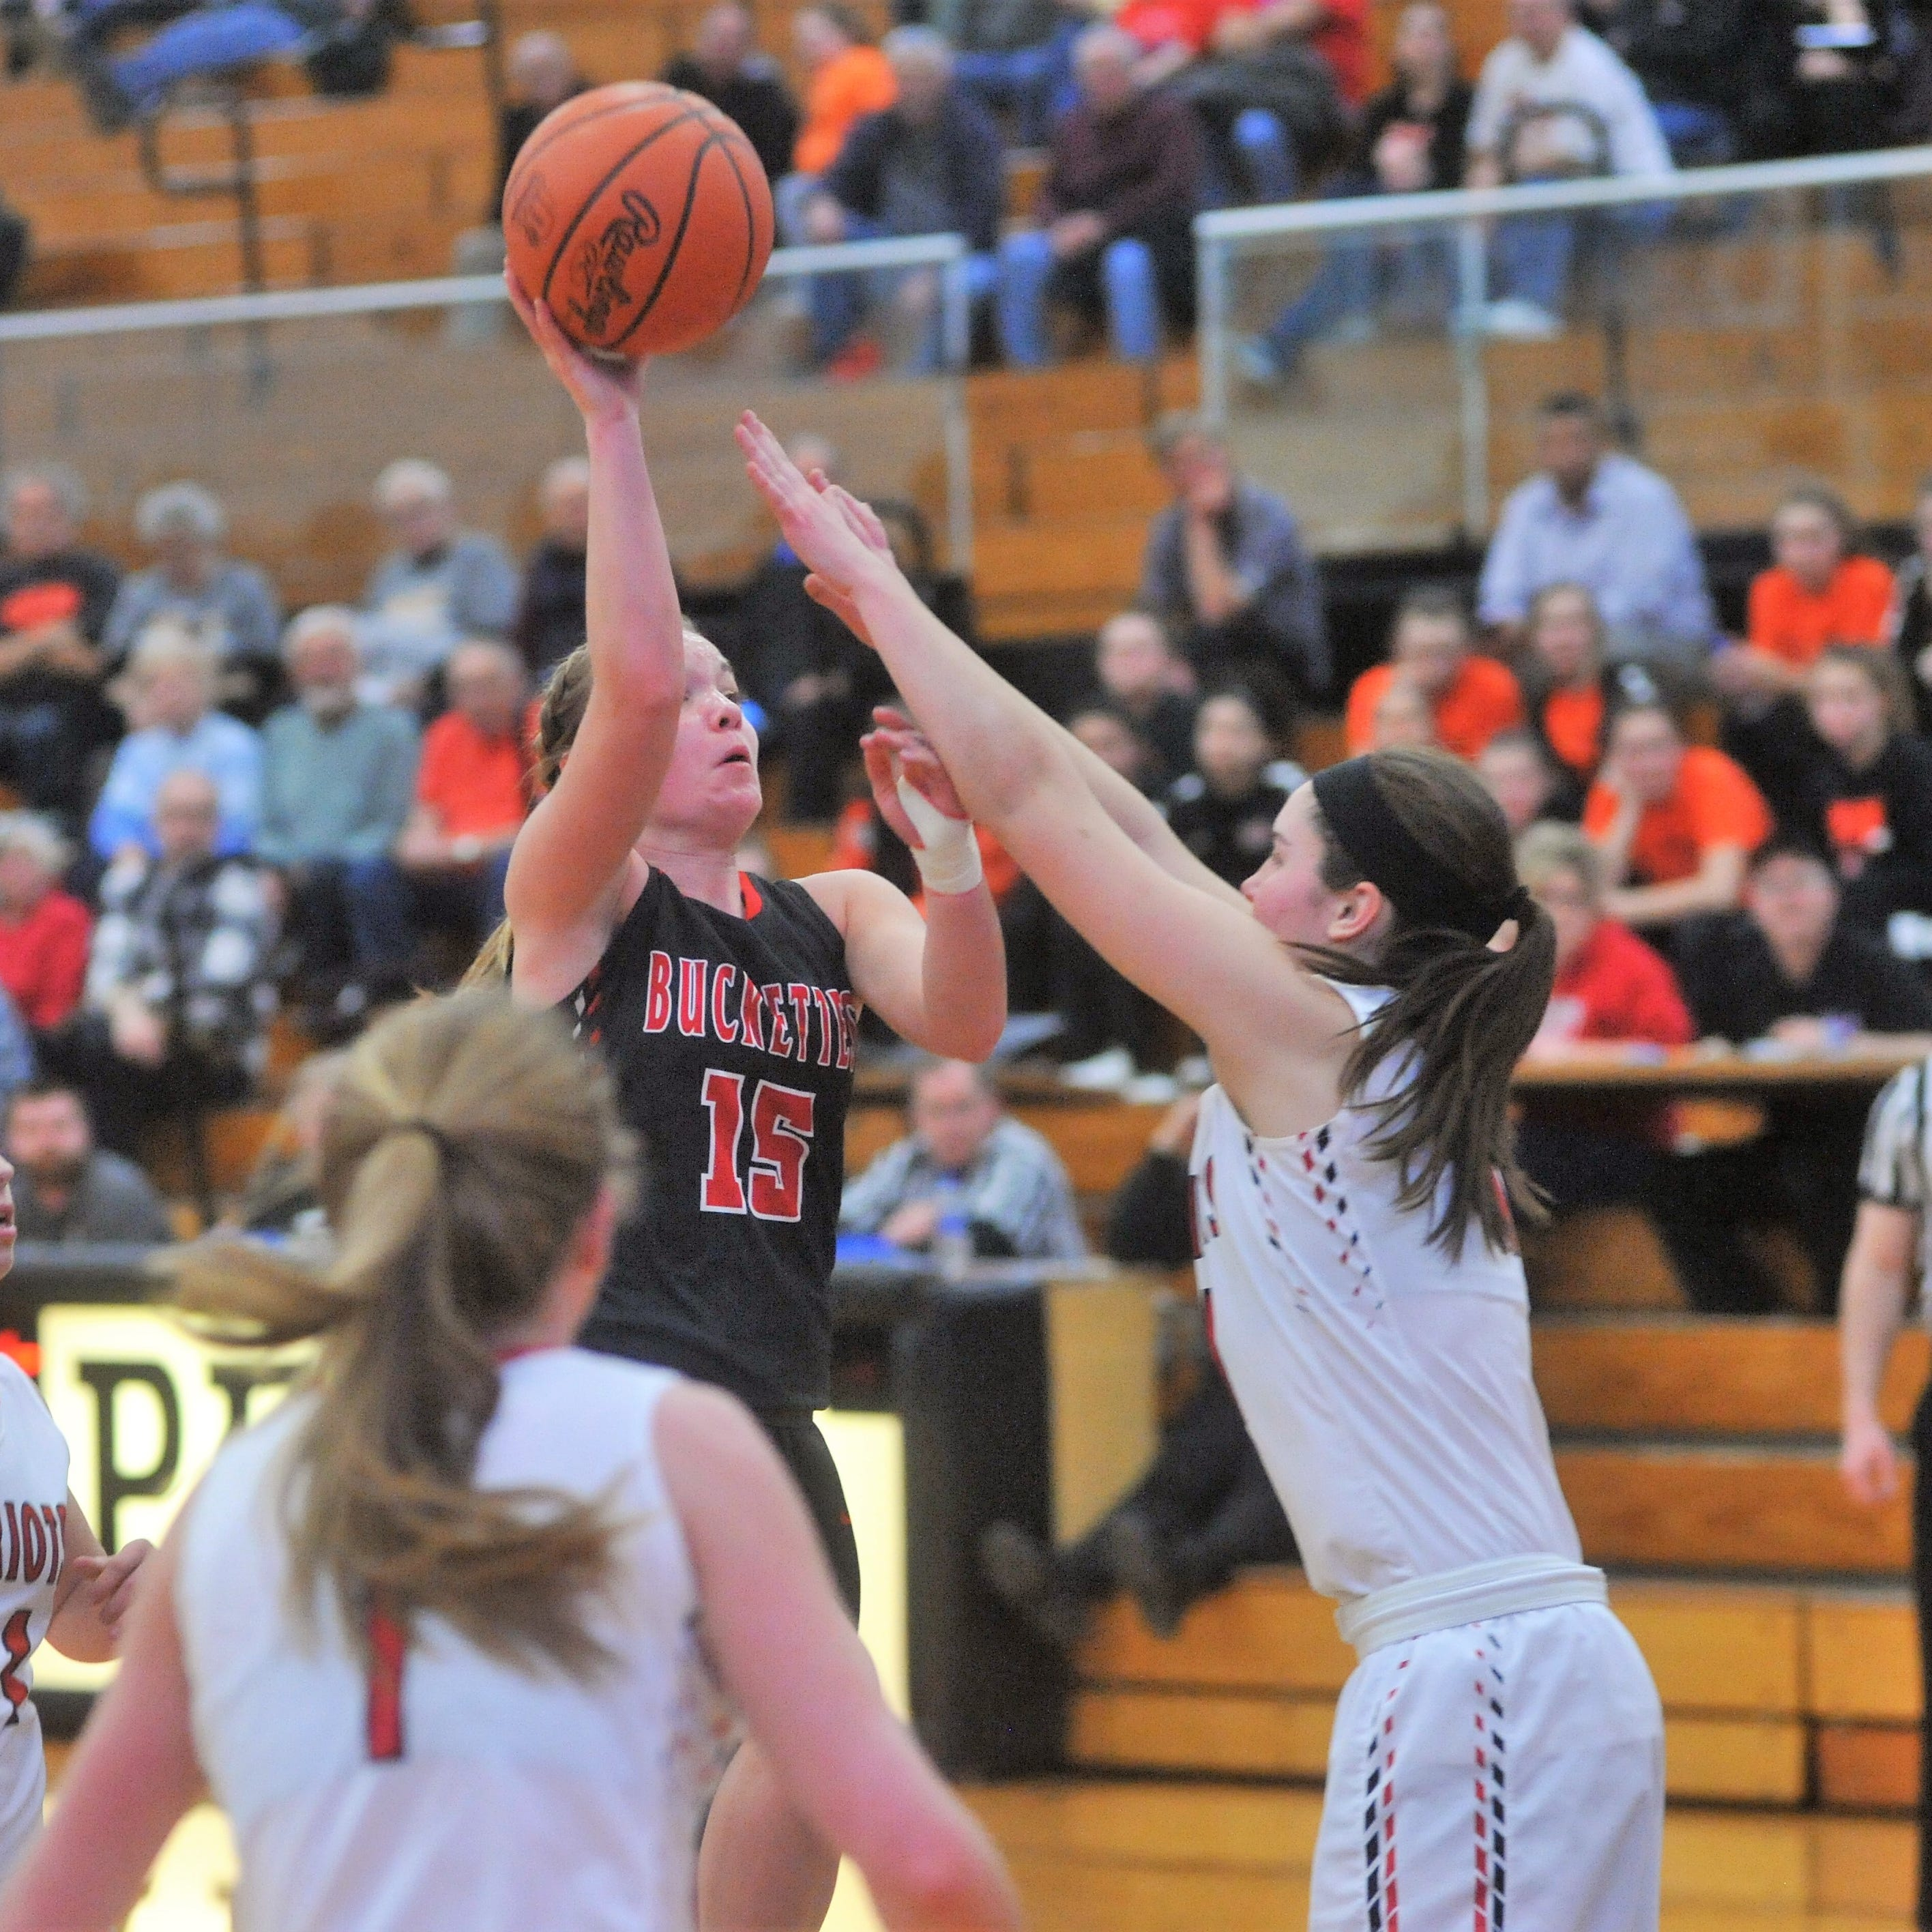 Buckeye Central's season comes to a close in D-IV regional semifinal